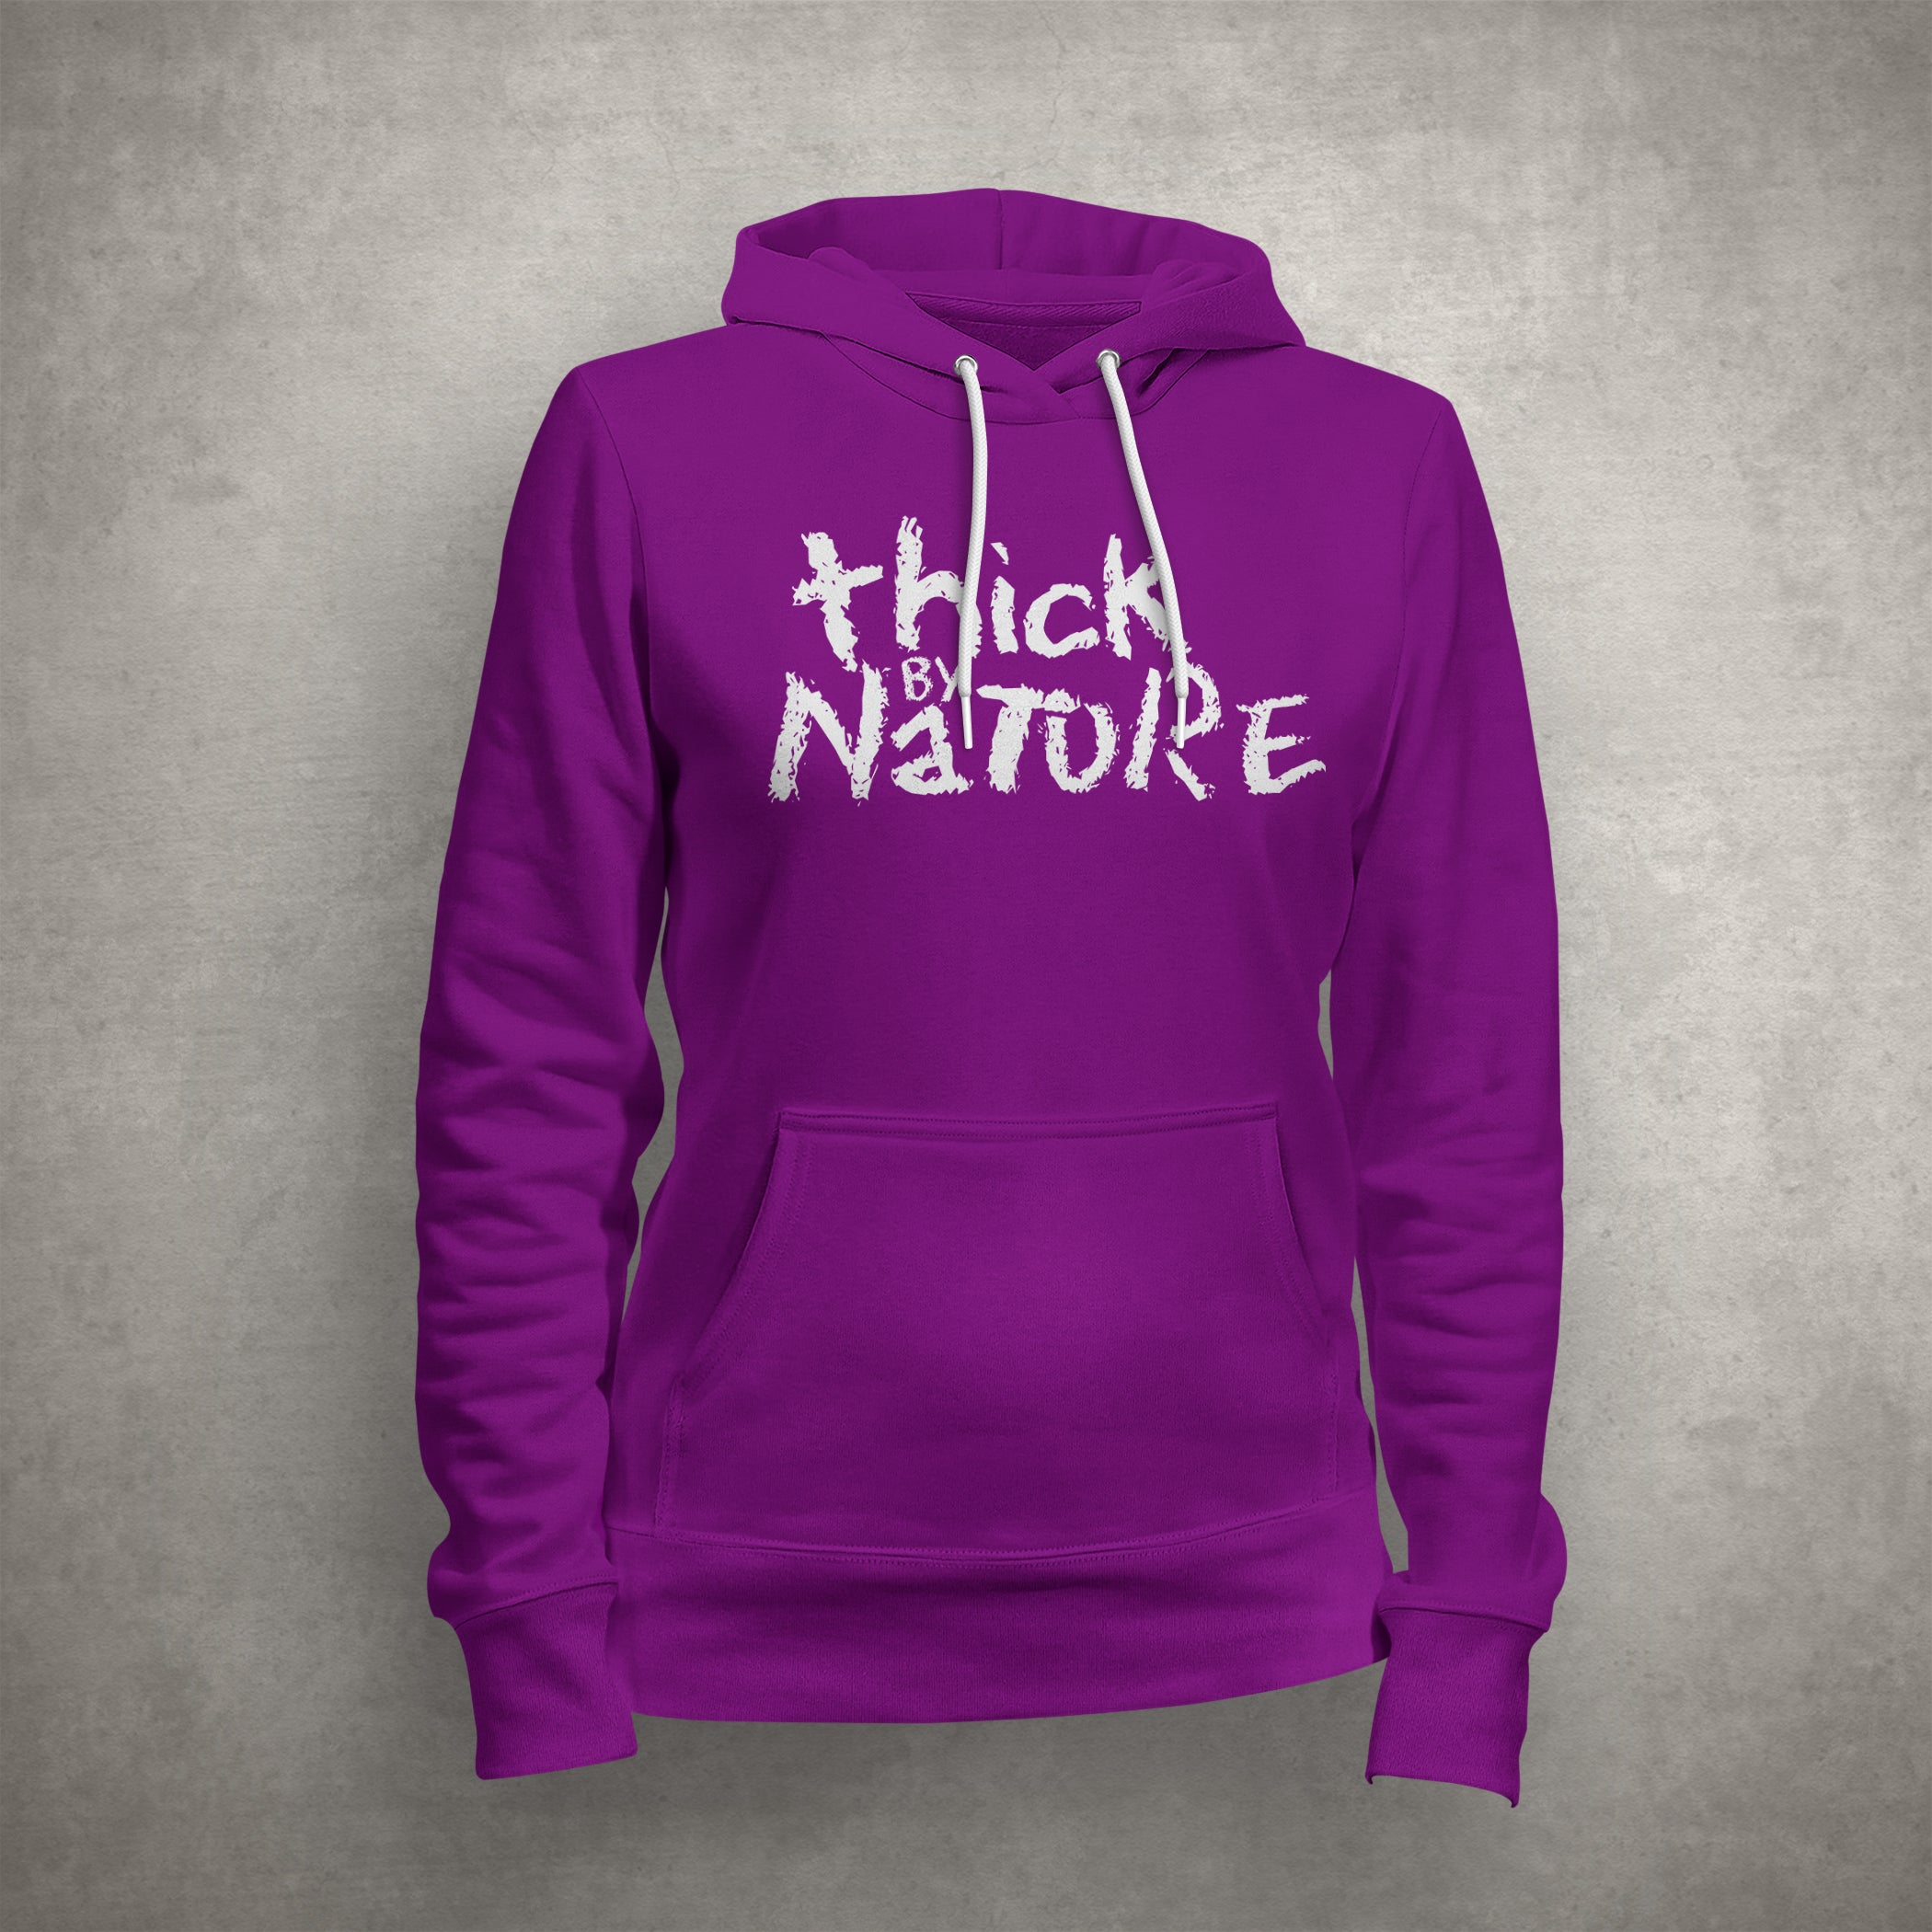 Thick By Nature Unisex Hoodie